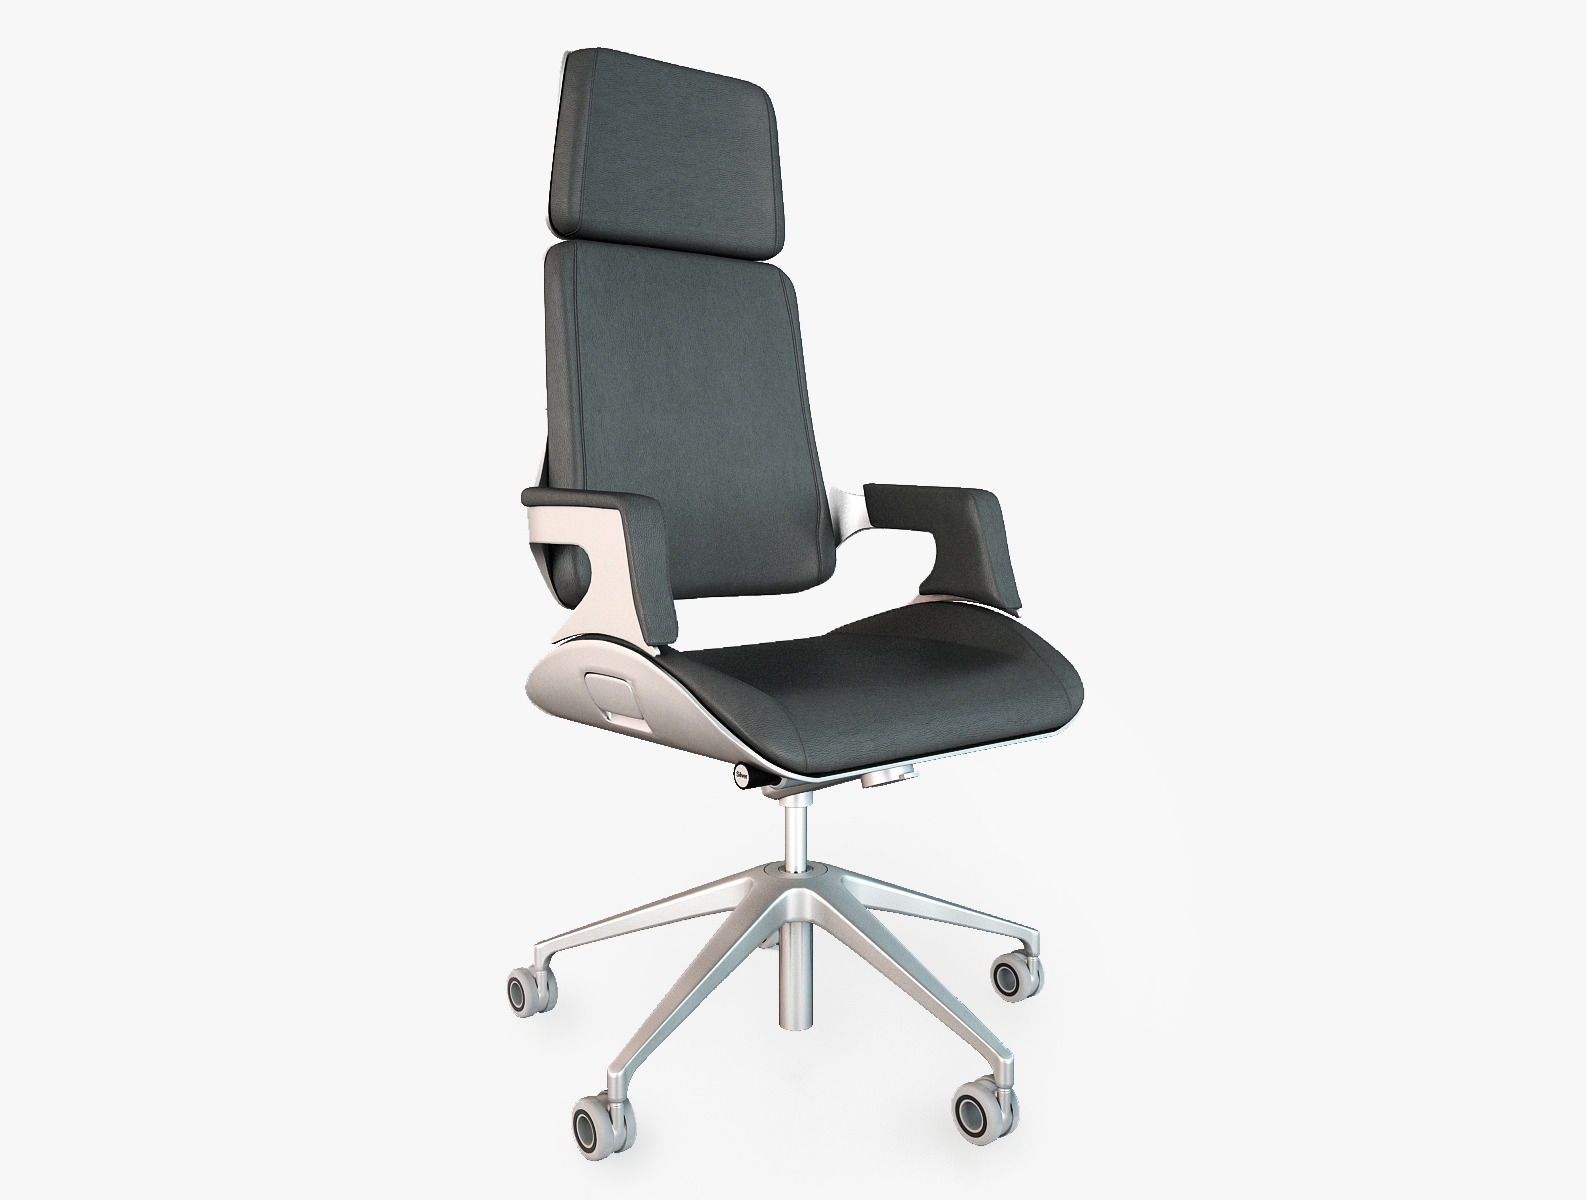 Interstuhl silver 362s office chair 3d model max obj fbx 1  Interstuhl Silver 362S Office Chair 3D model   CGTrader. Silver Office Chair. Home Design Ideas